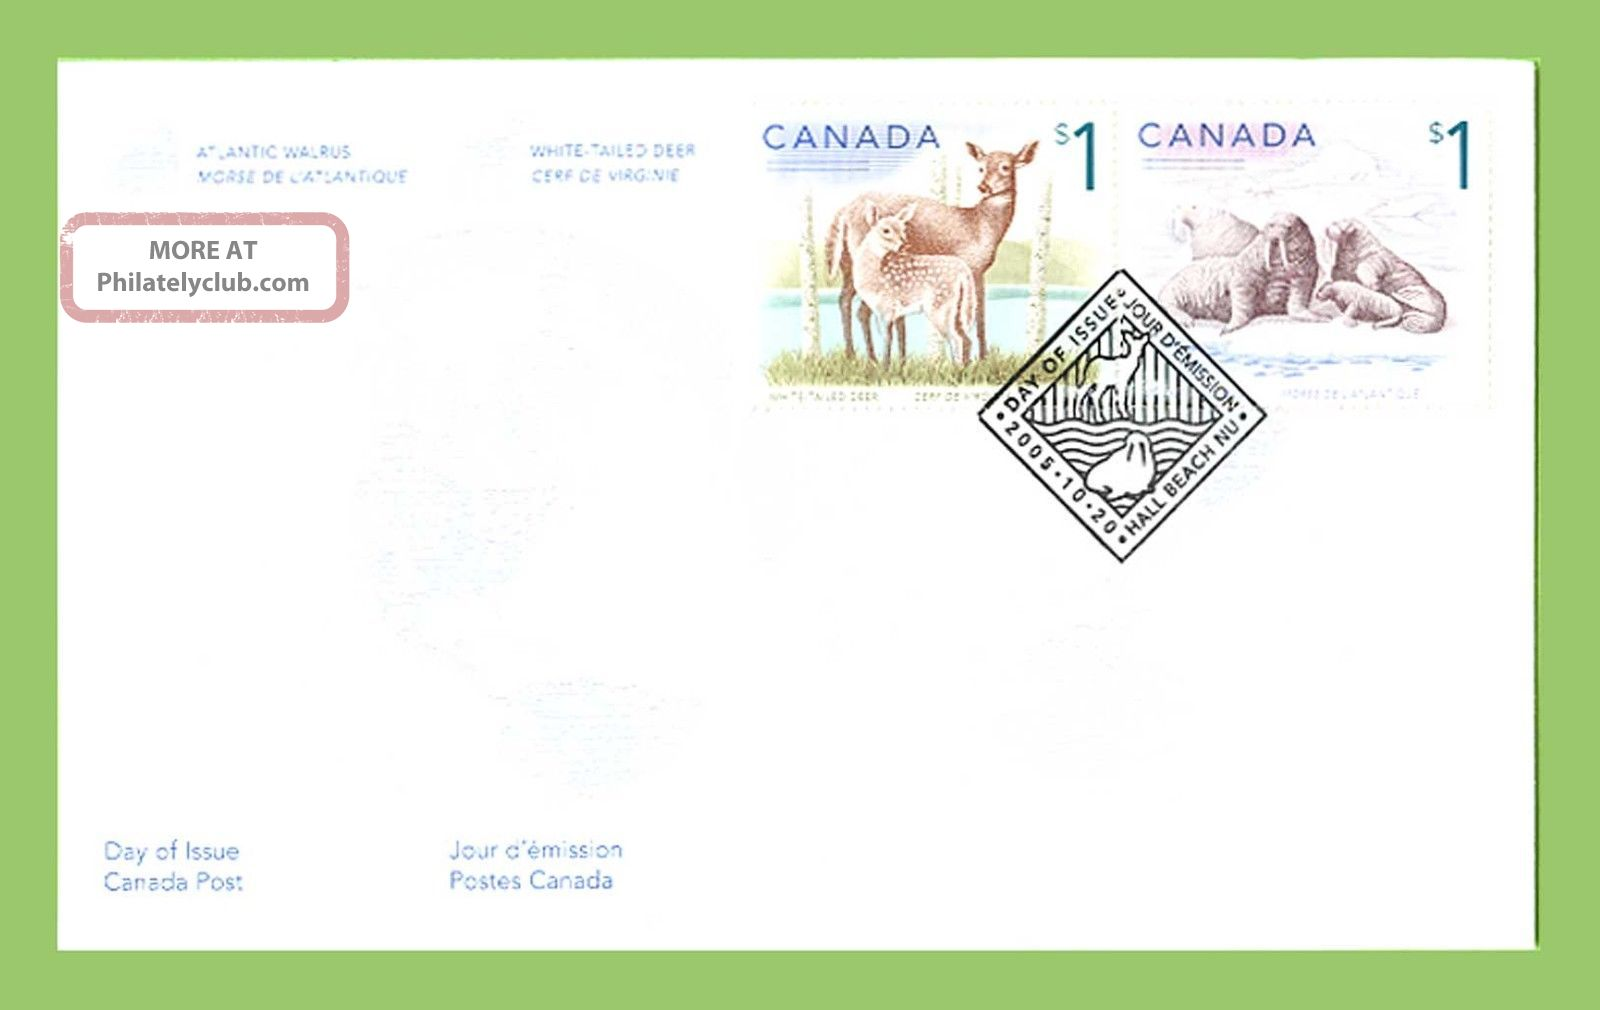 Canada 2005 S1 Deer And $1 Walrus On First Day Cover Stamps photo